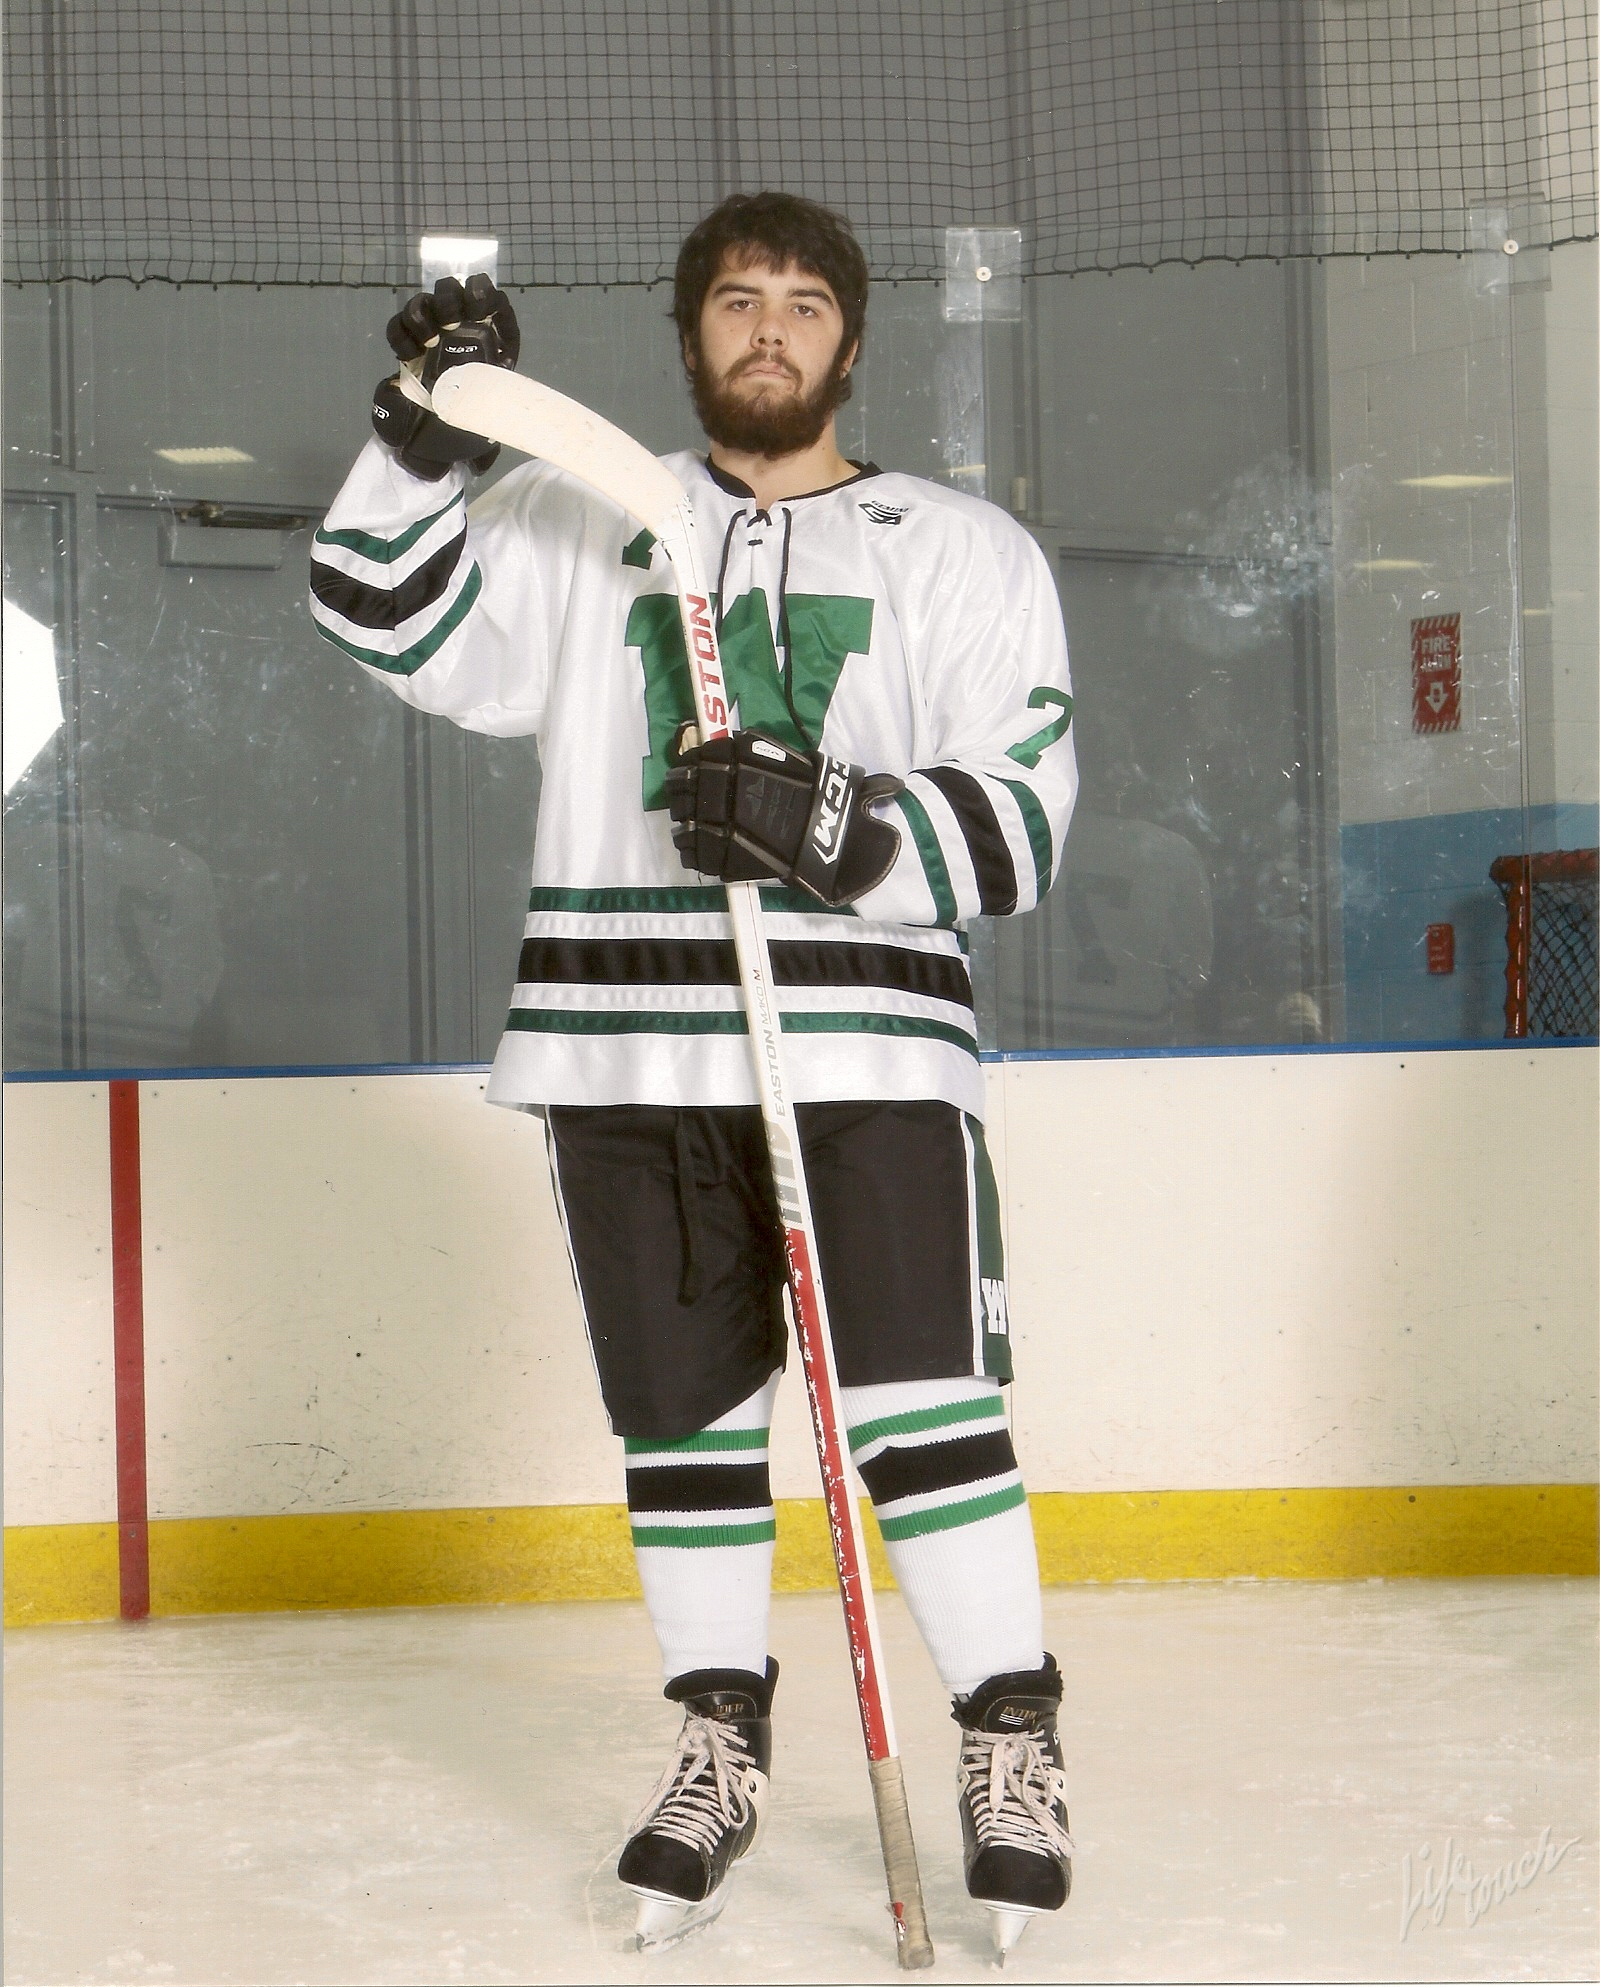 Colin Teets, who is partially paralyzed on his right side, is a senior forward on the Westlake High (Ohio) varsity hockey team.   Photo courtesy of The Teets Family